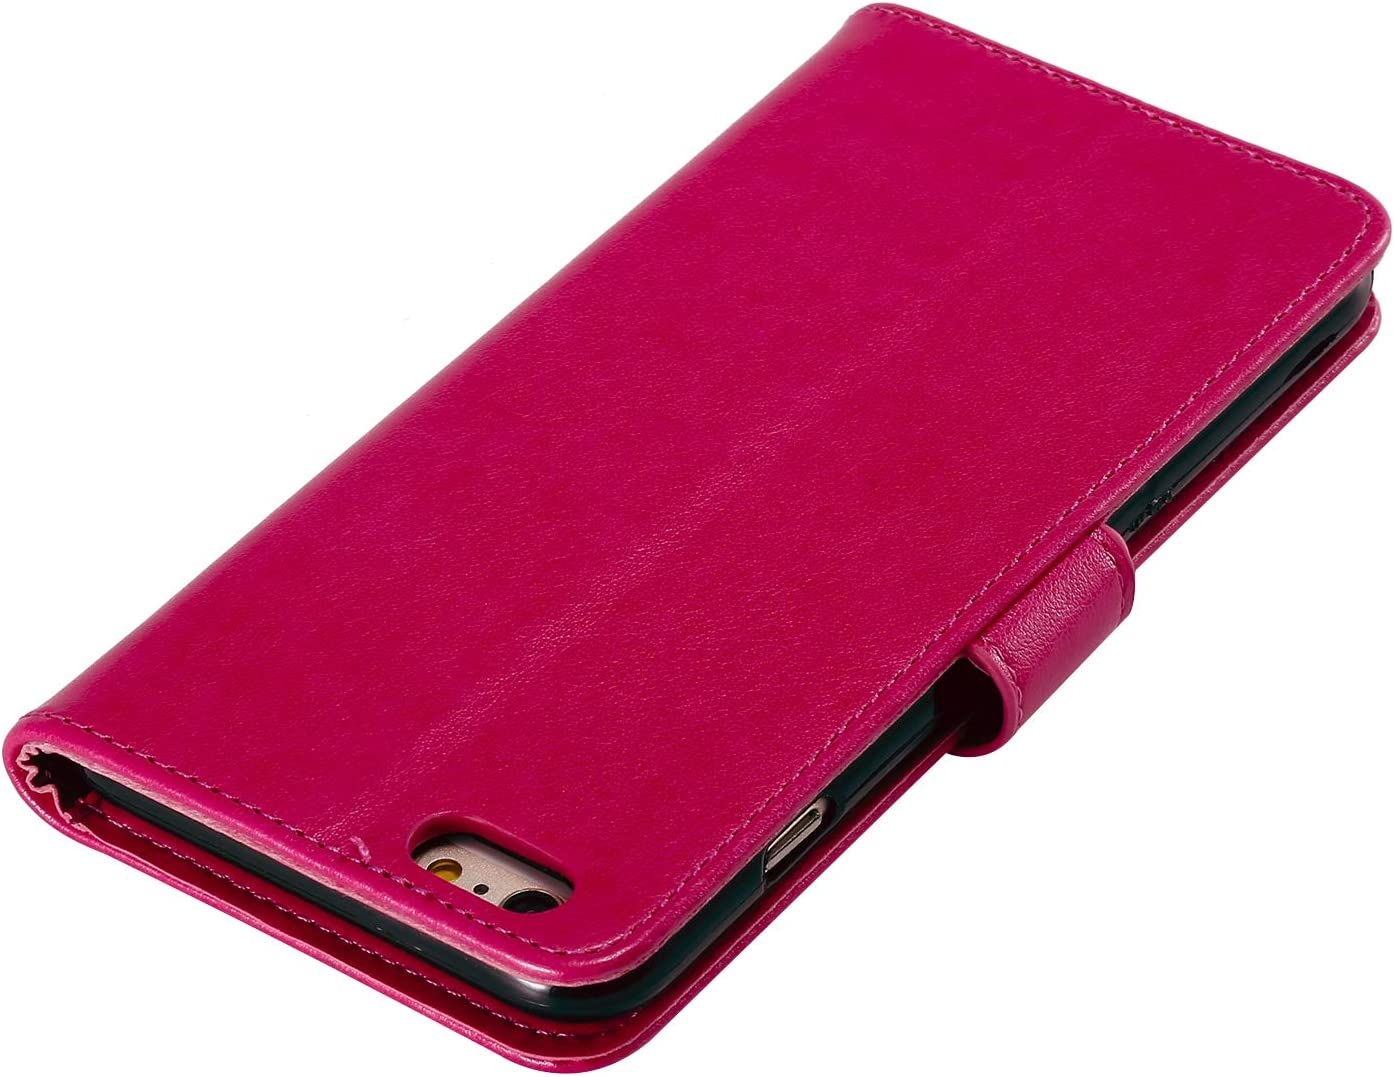 NEHHA130014 Red 6Plus 6 Plus with Card Holder Side Pocket Kickstand Shockproof Leather Flip Cover Case for Apple iPhone 6SPlus NEXCURIO Wallet Case for iPhone 6S Plus